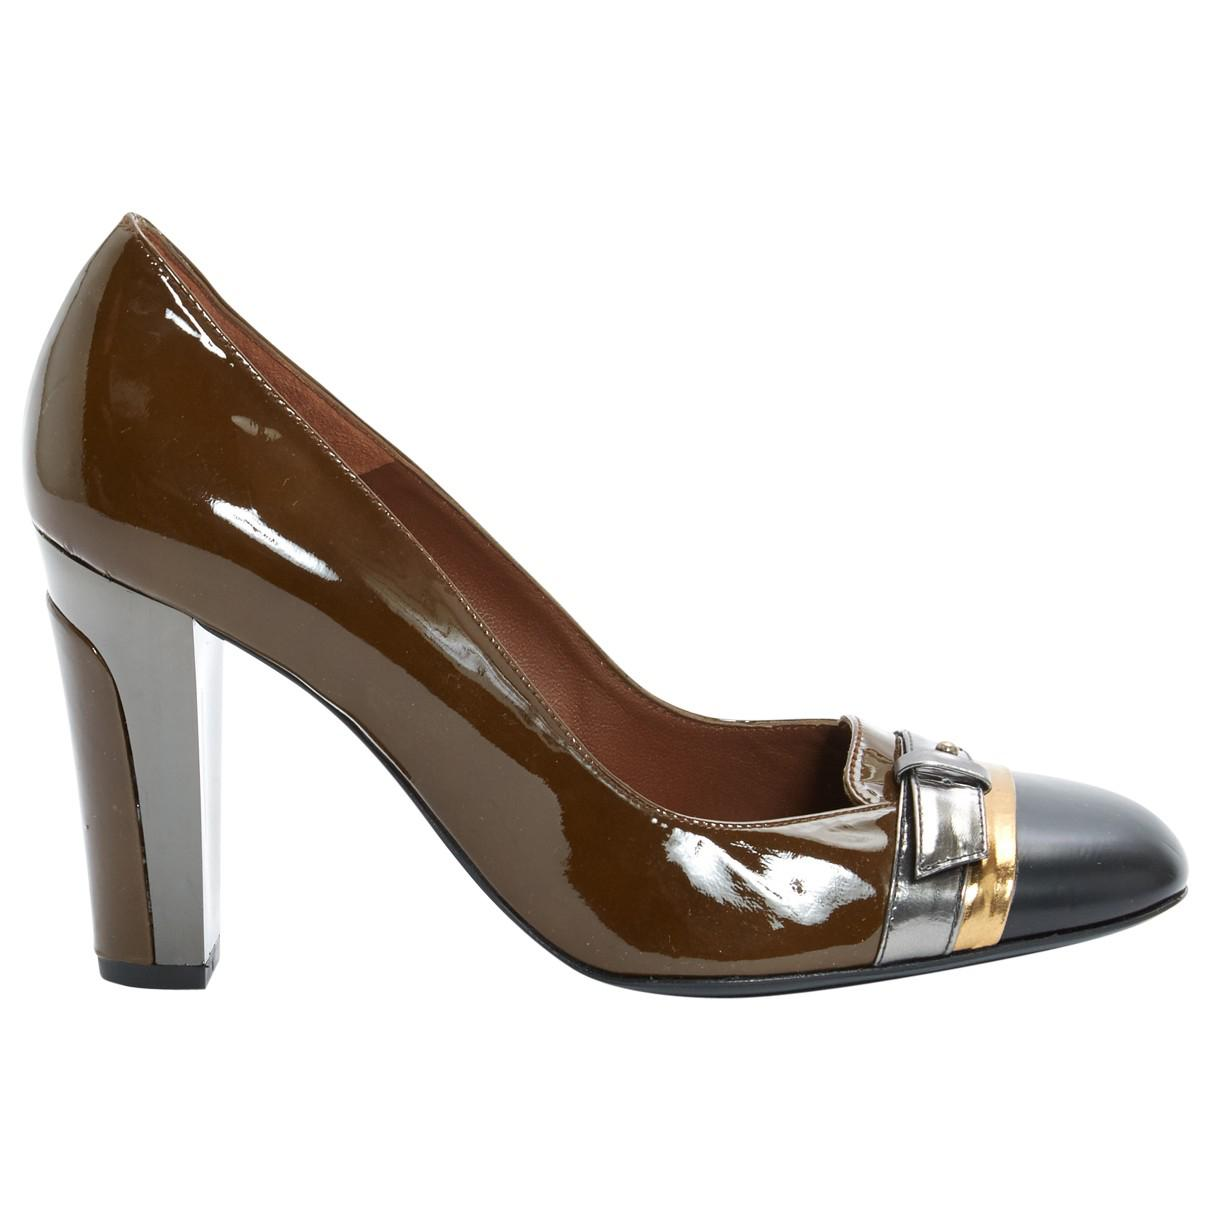 Pre-owned - LEATHER PUMPS Barbara Bui VHQvCoG